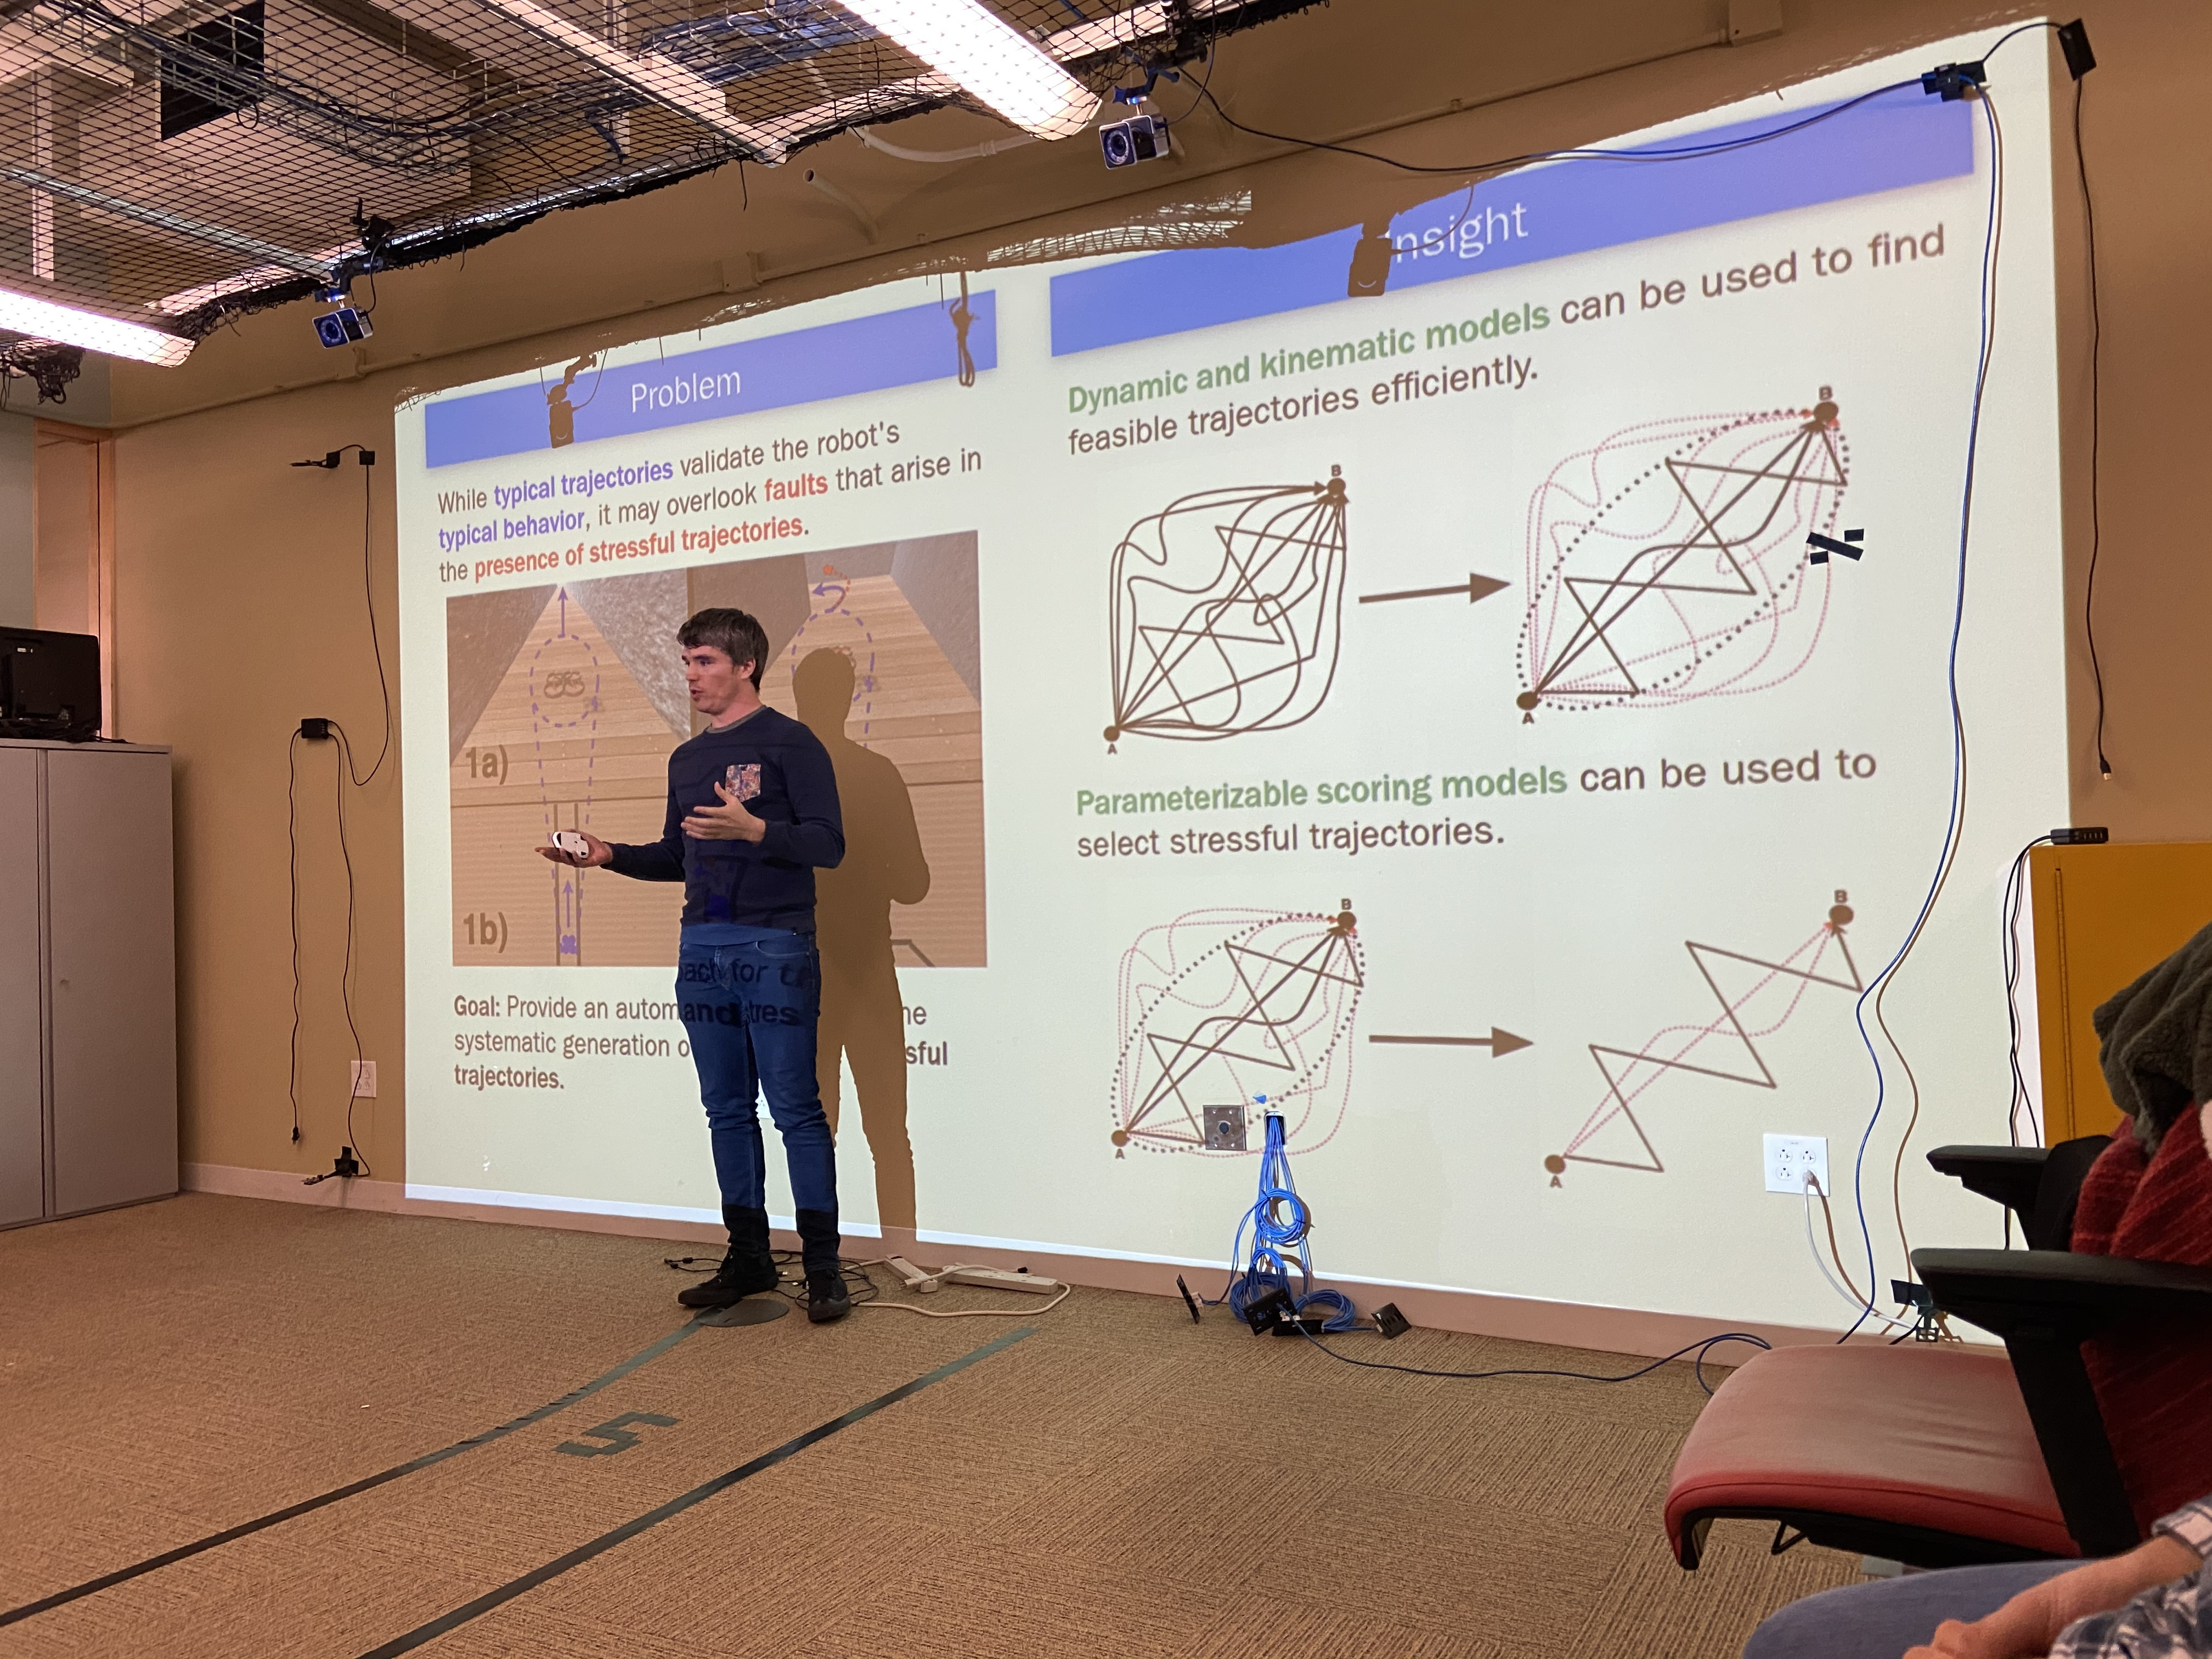 Carl giving a talk on his recently published work on creating stressful trajectories for robots.